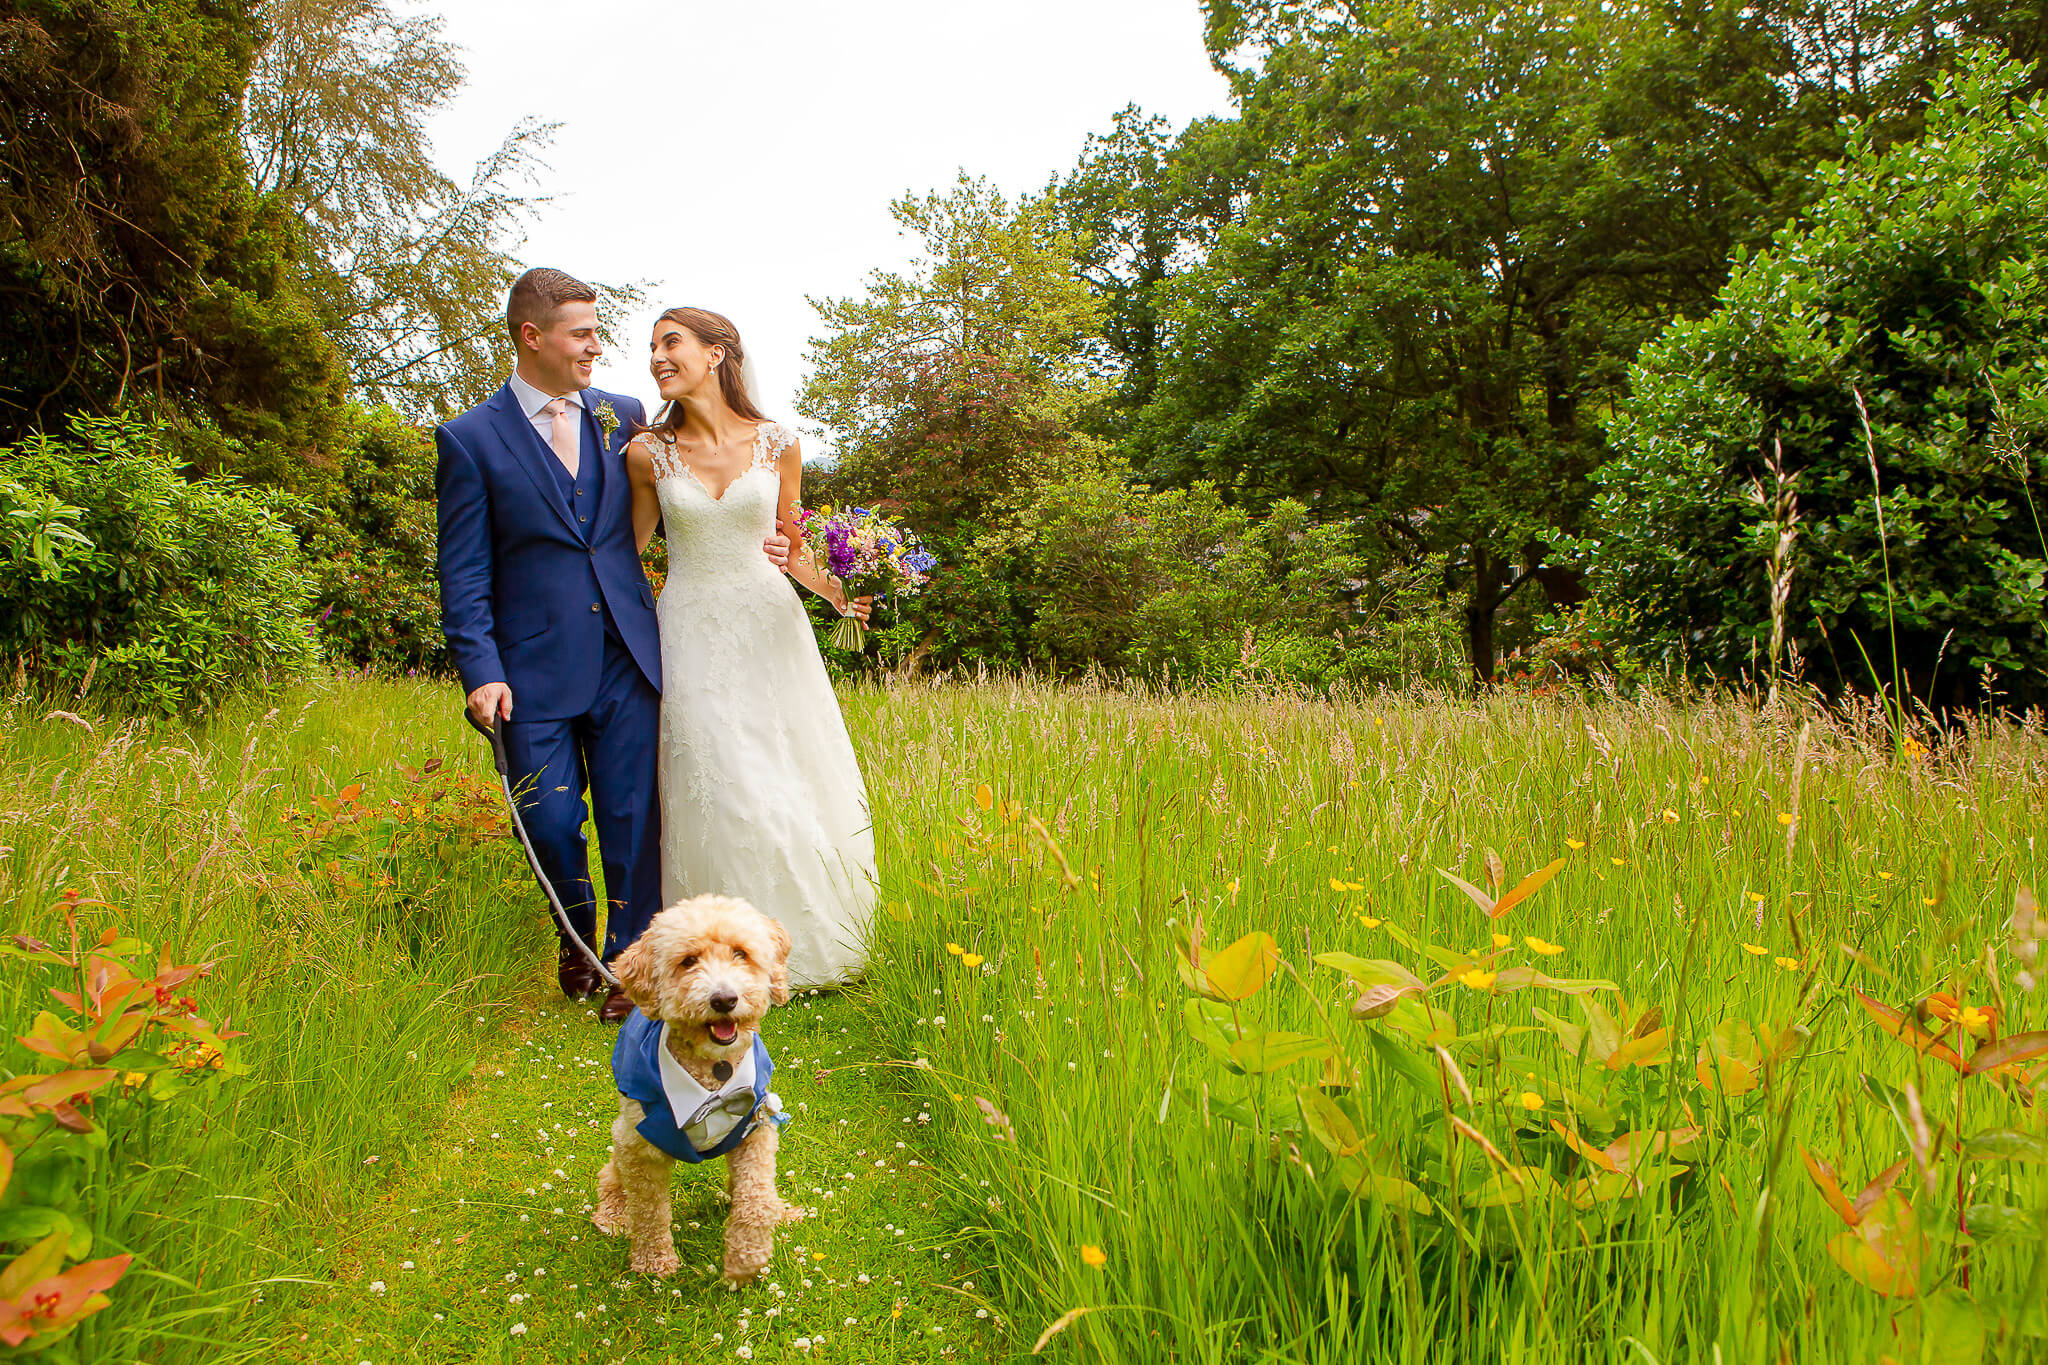 best-wedding-photographers-uk-europe-stanbury-photography-098